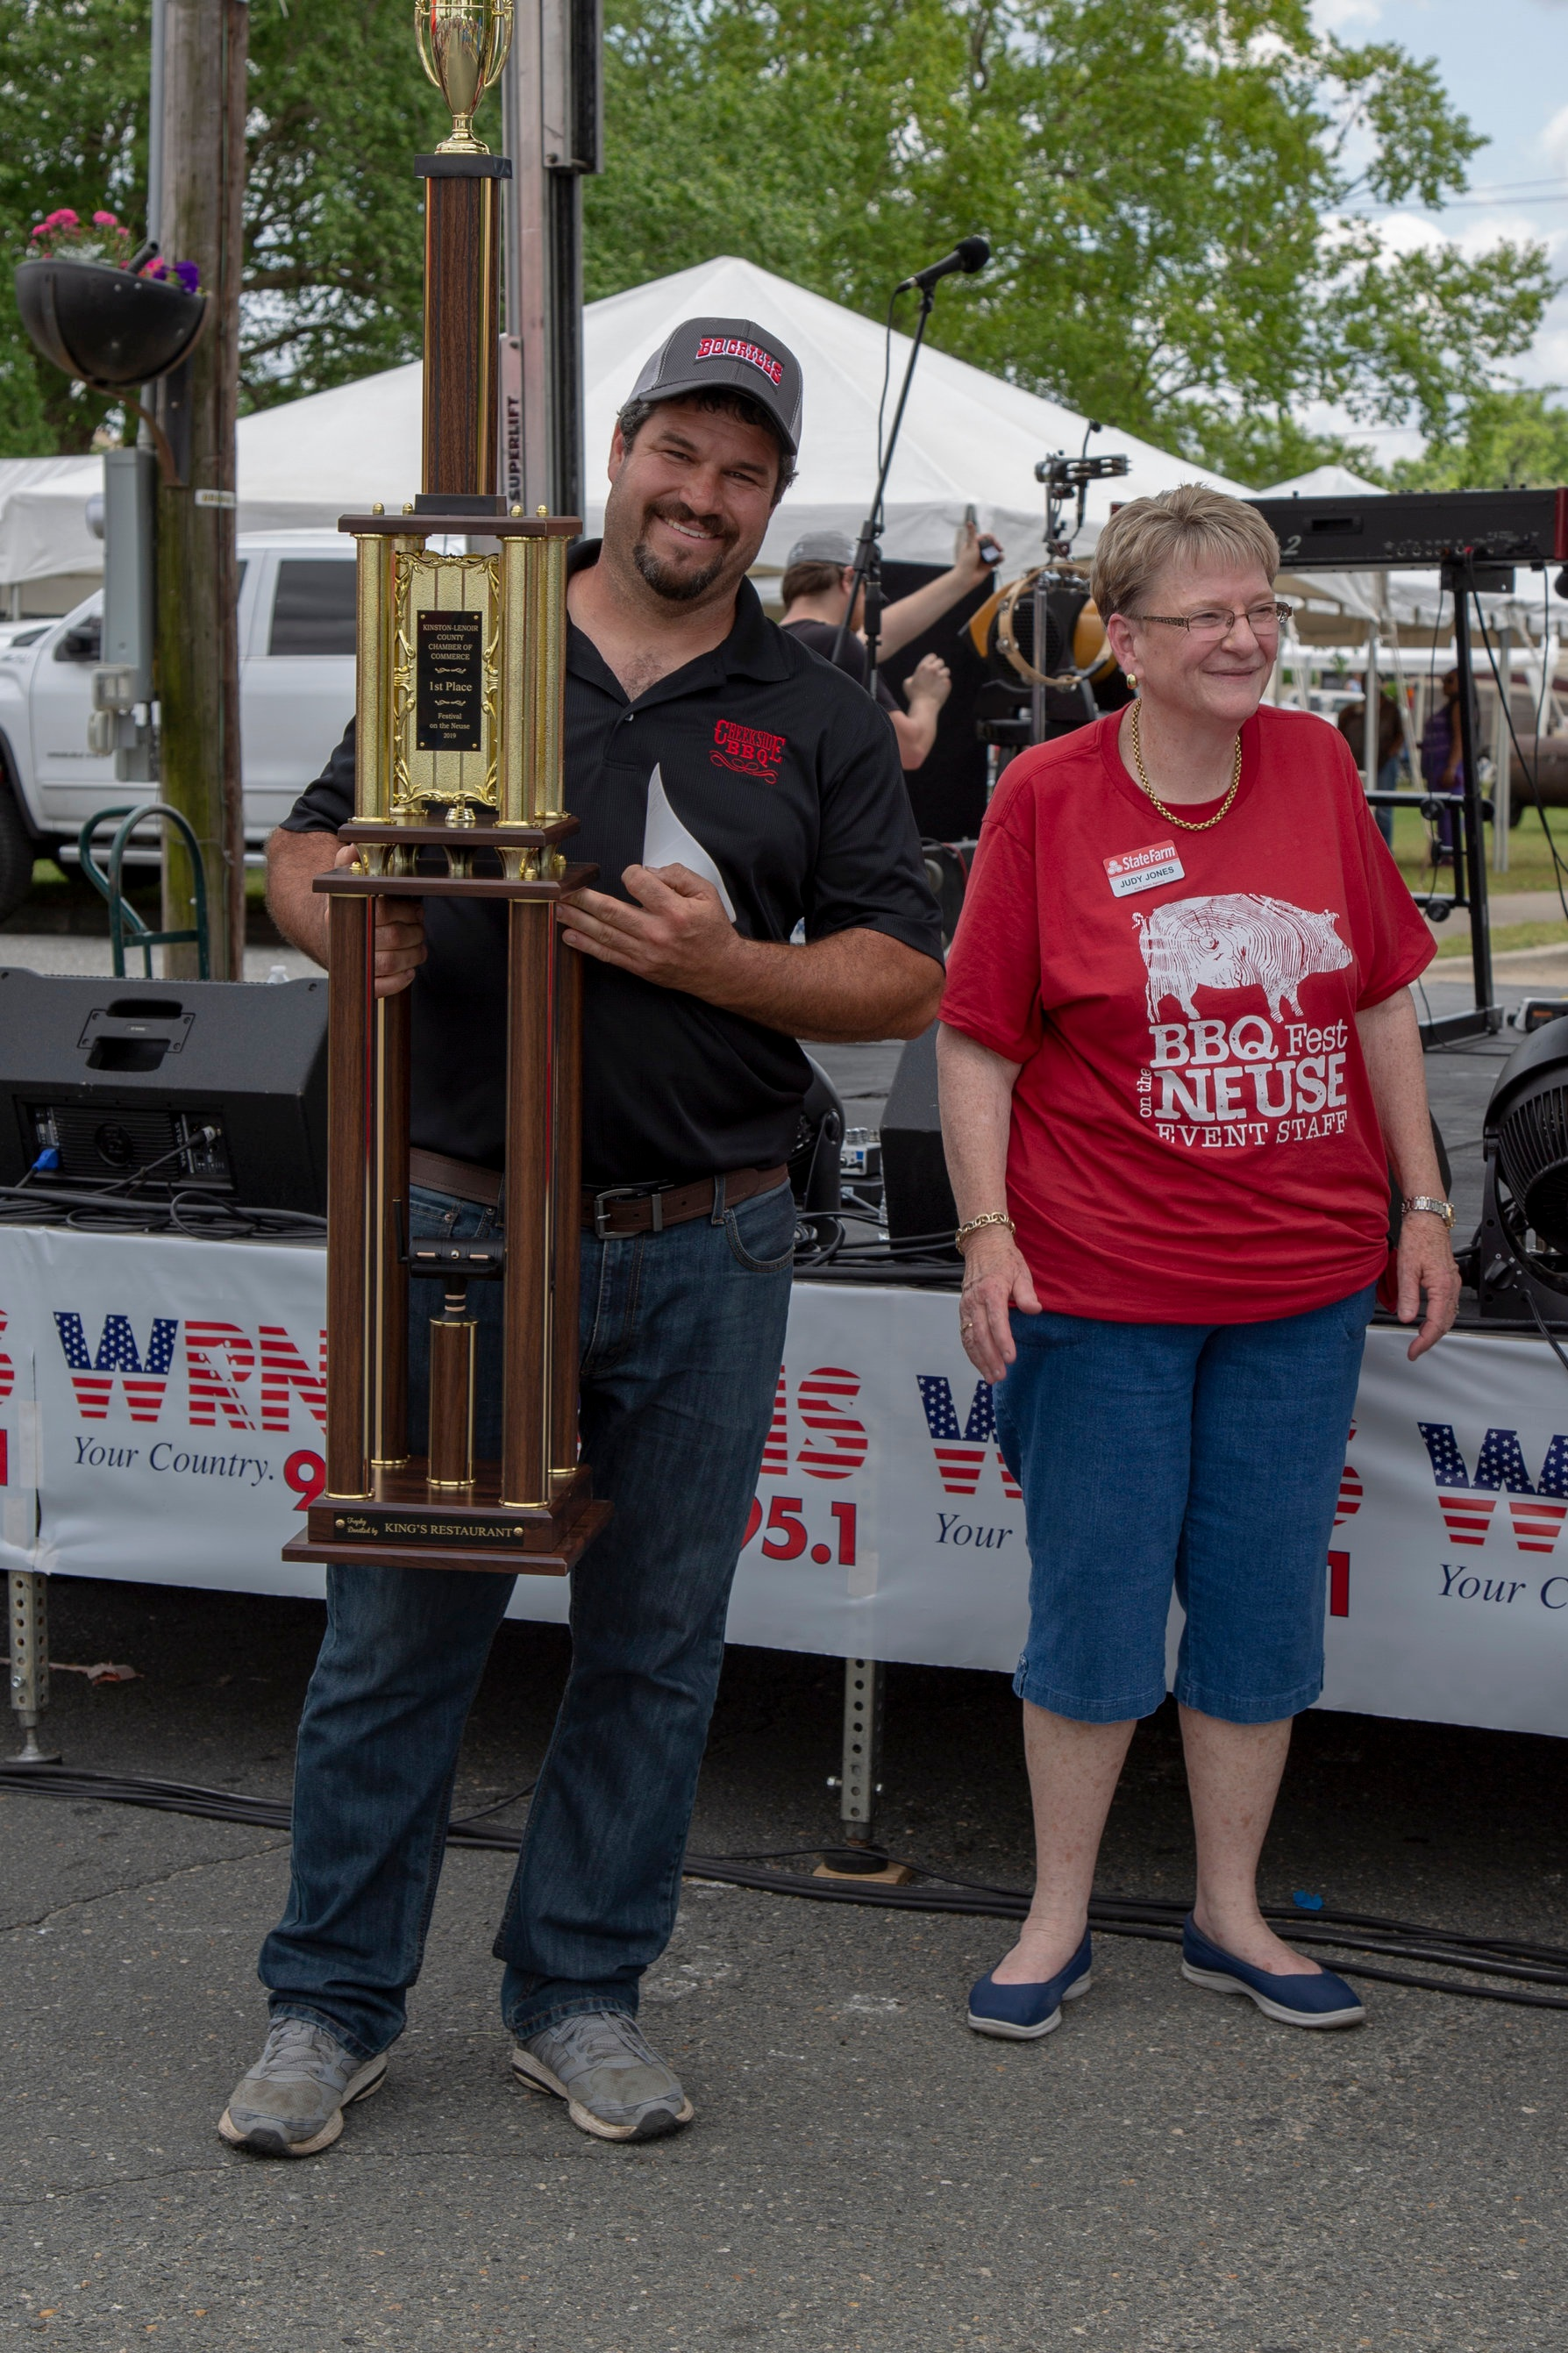 1st Place Team Team Jason Williams, Creekside BBQ Sponsor: Mill Creek Enterprise $500 and Trophy